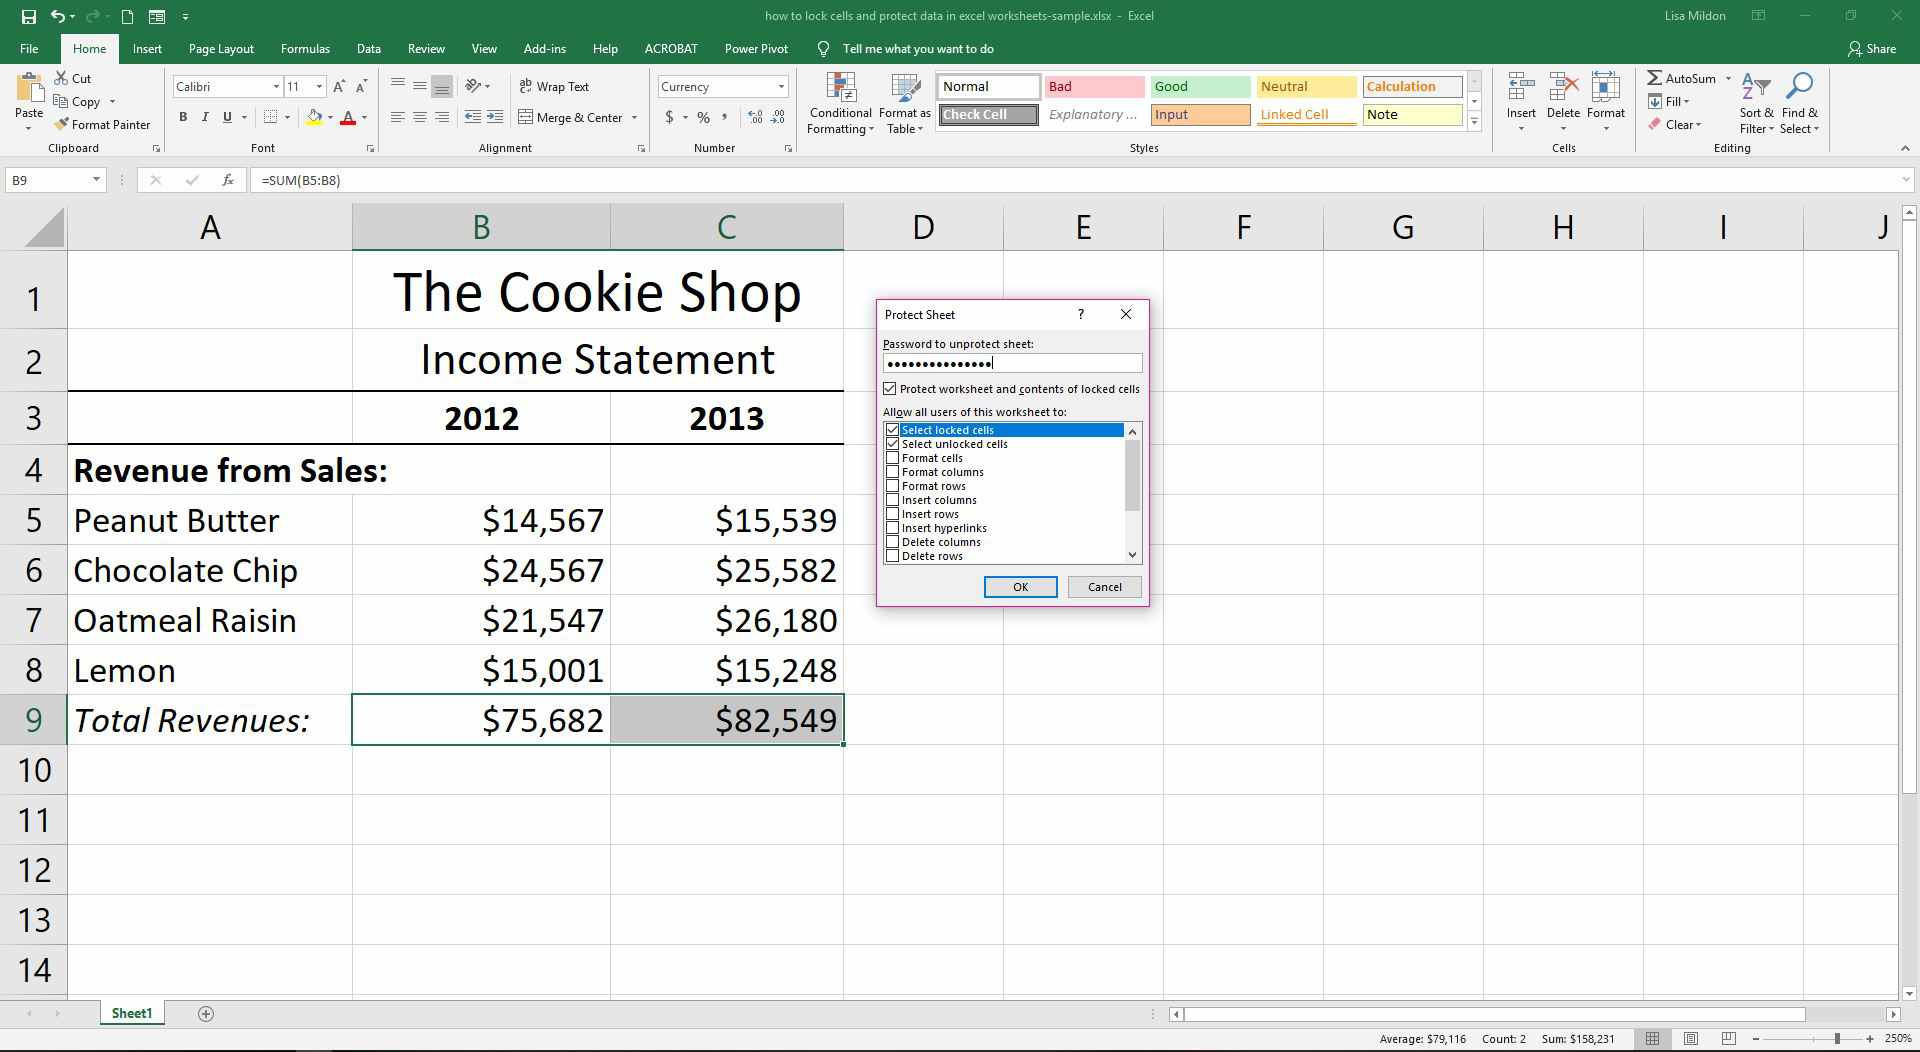 How To Protect Data In Excel Worksheets